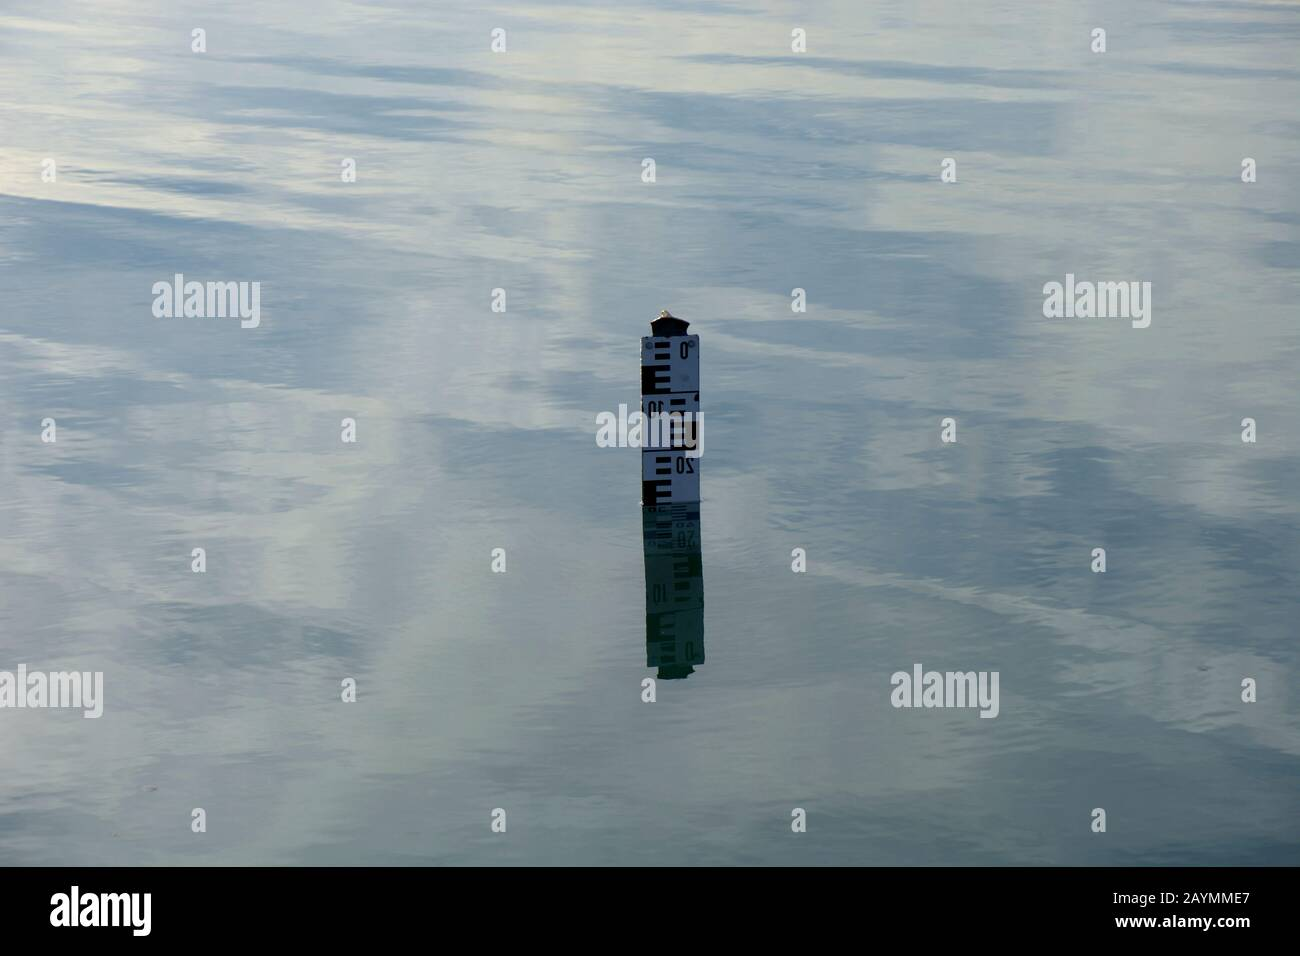 water level indicator show the depth of water in a lake, water depth sign on calm water surface Stock Photo